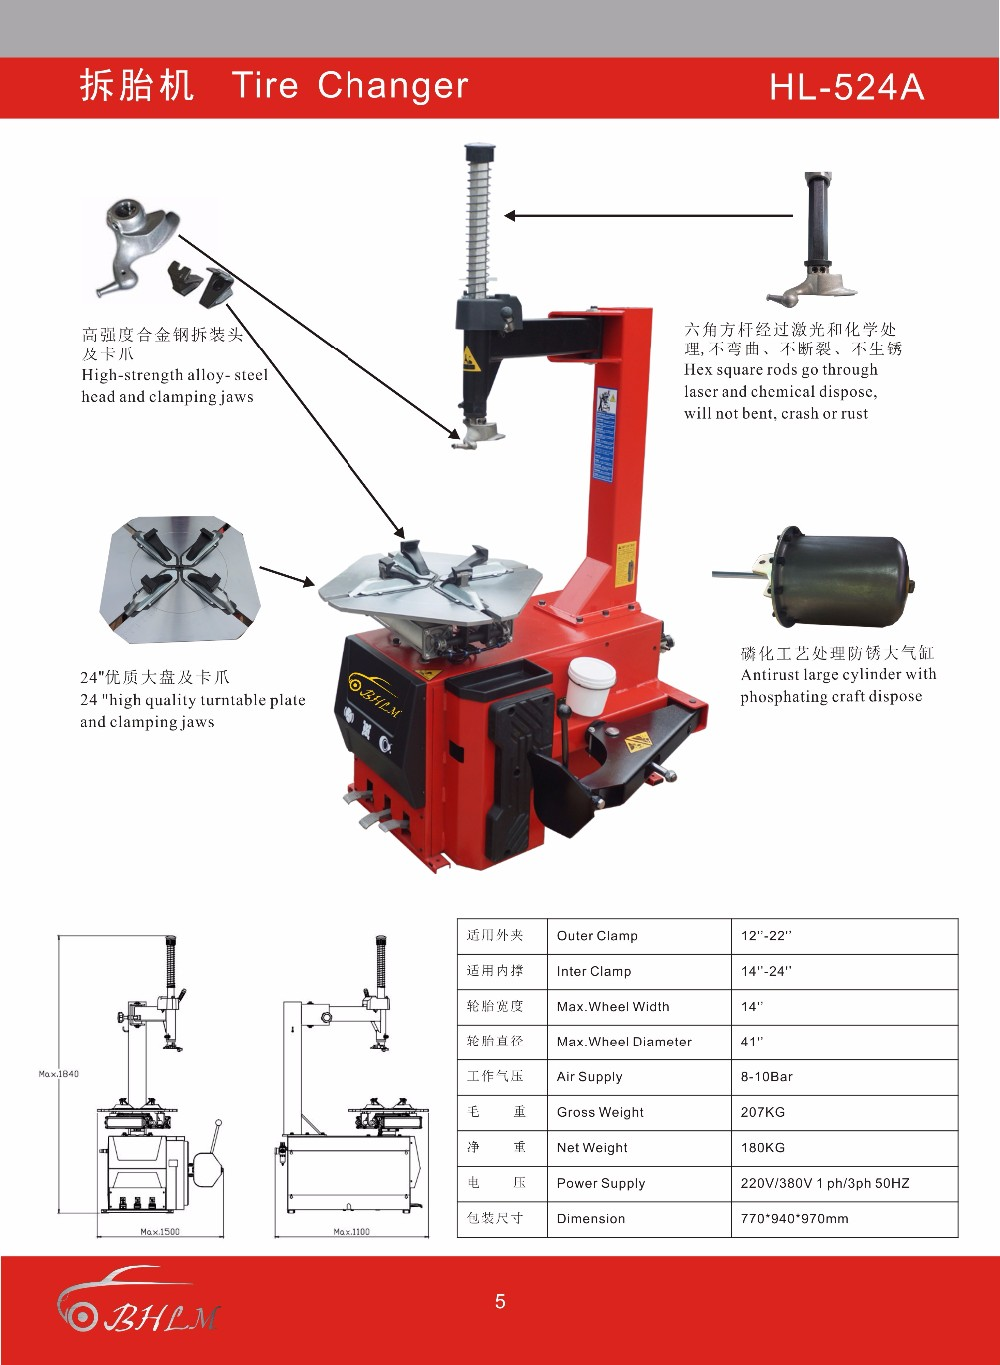 Tire Machine Parts >> Hl 524a Max 41 Ce 2500kg Mmotorcycle Semi Auto Tire Changer Repair